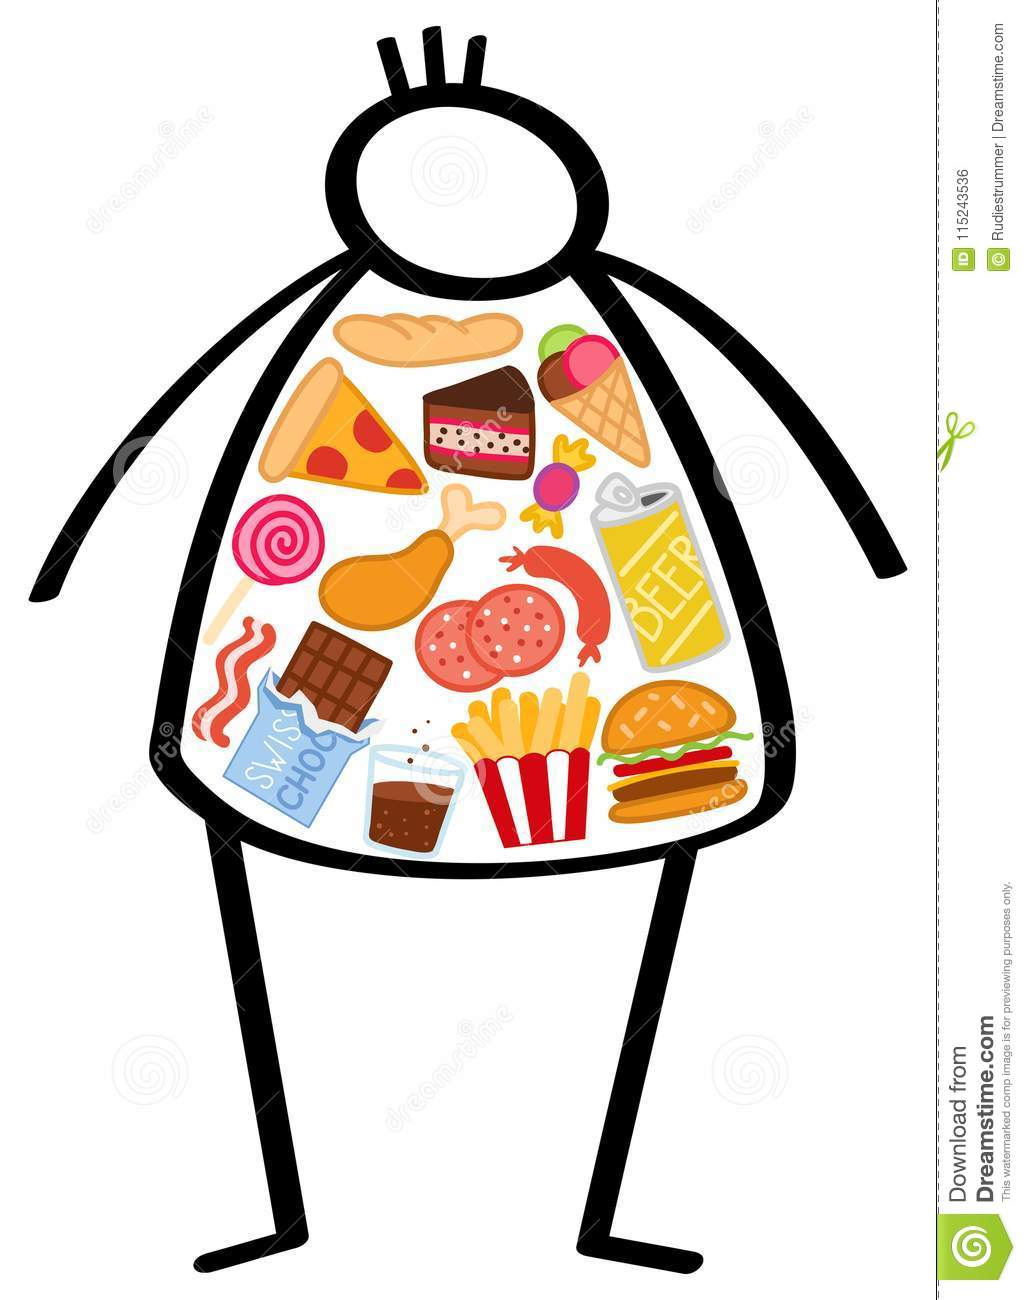 Simple overweight stick figure man, body filled with unhealthy foods, junk food, snacks, hamburger, pizza, chocolate and beer